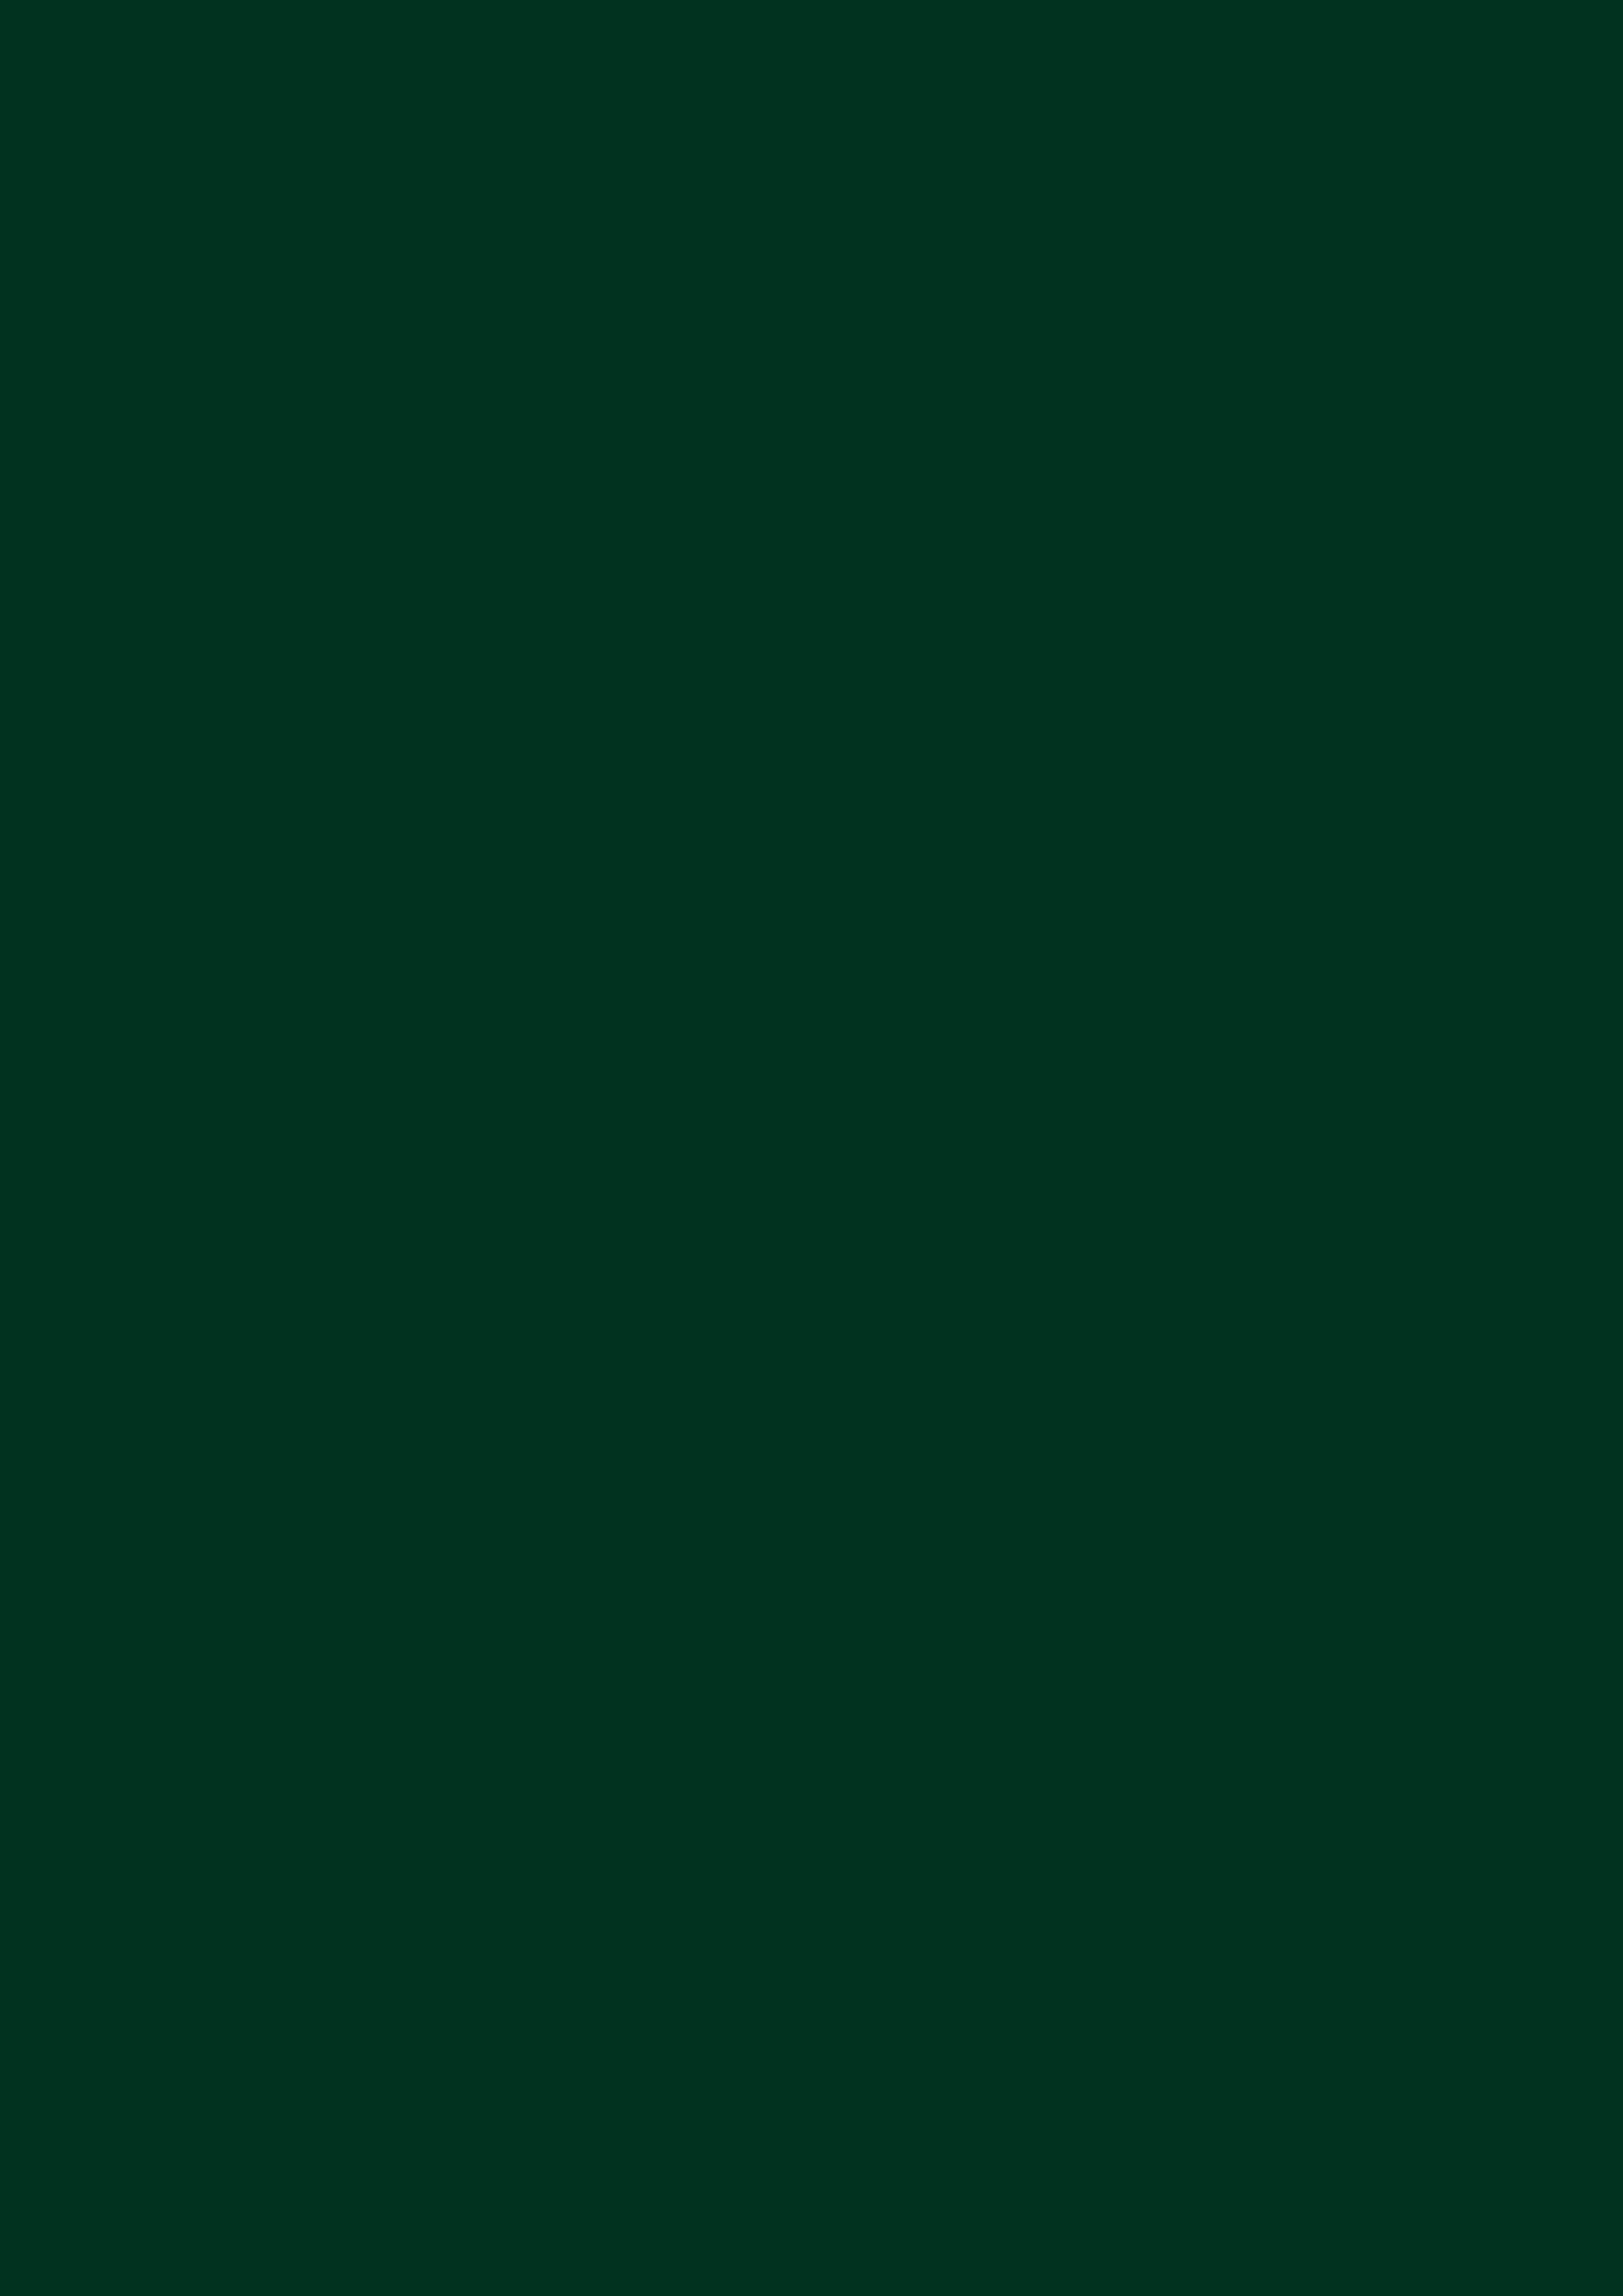 2480x3508 Dark Green Solid Color Background